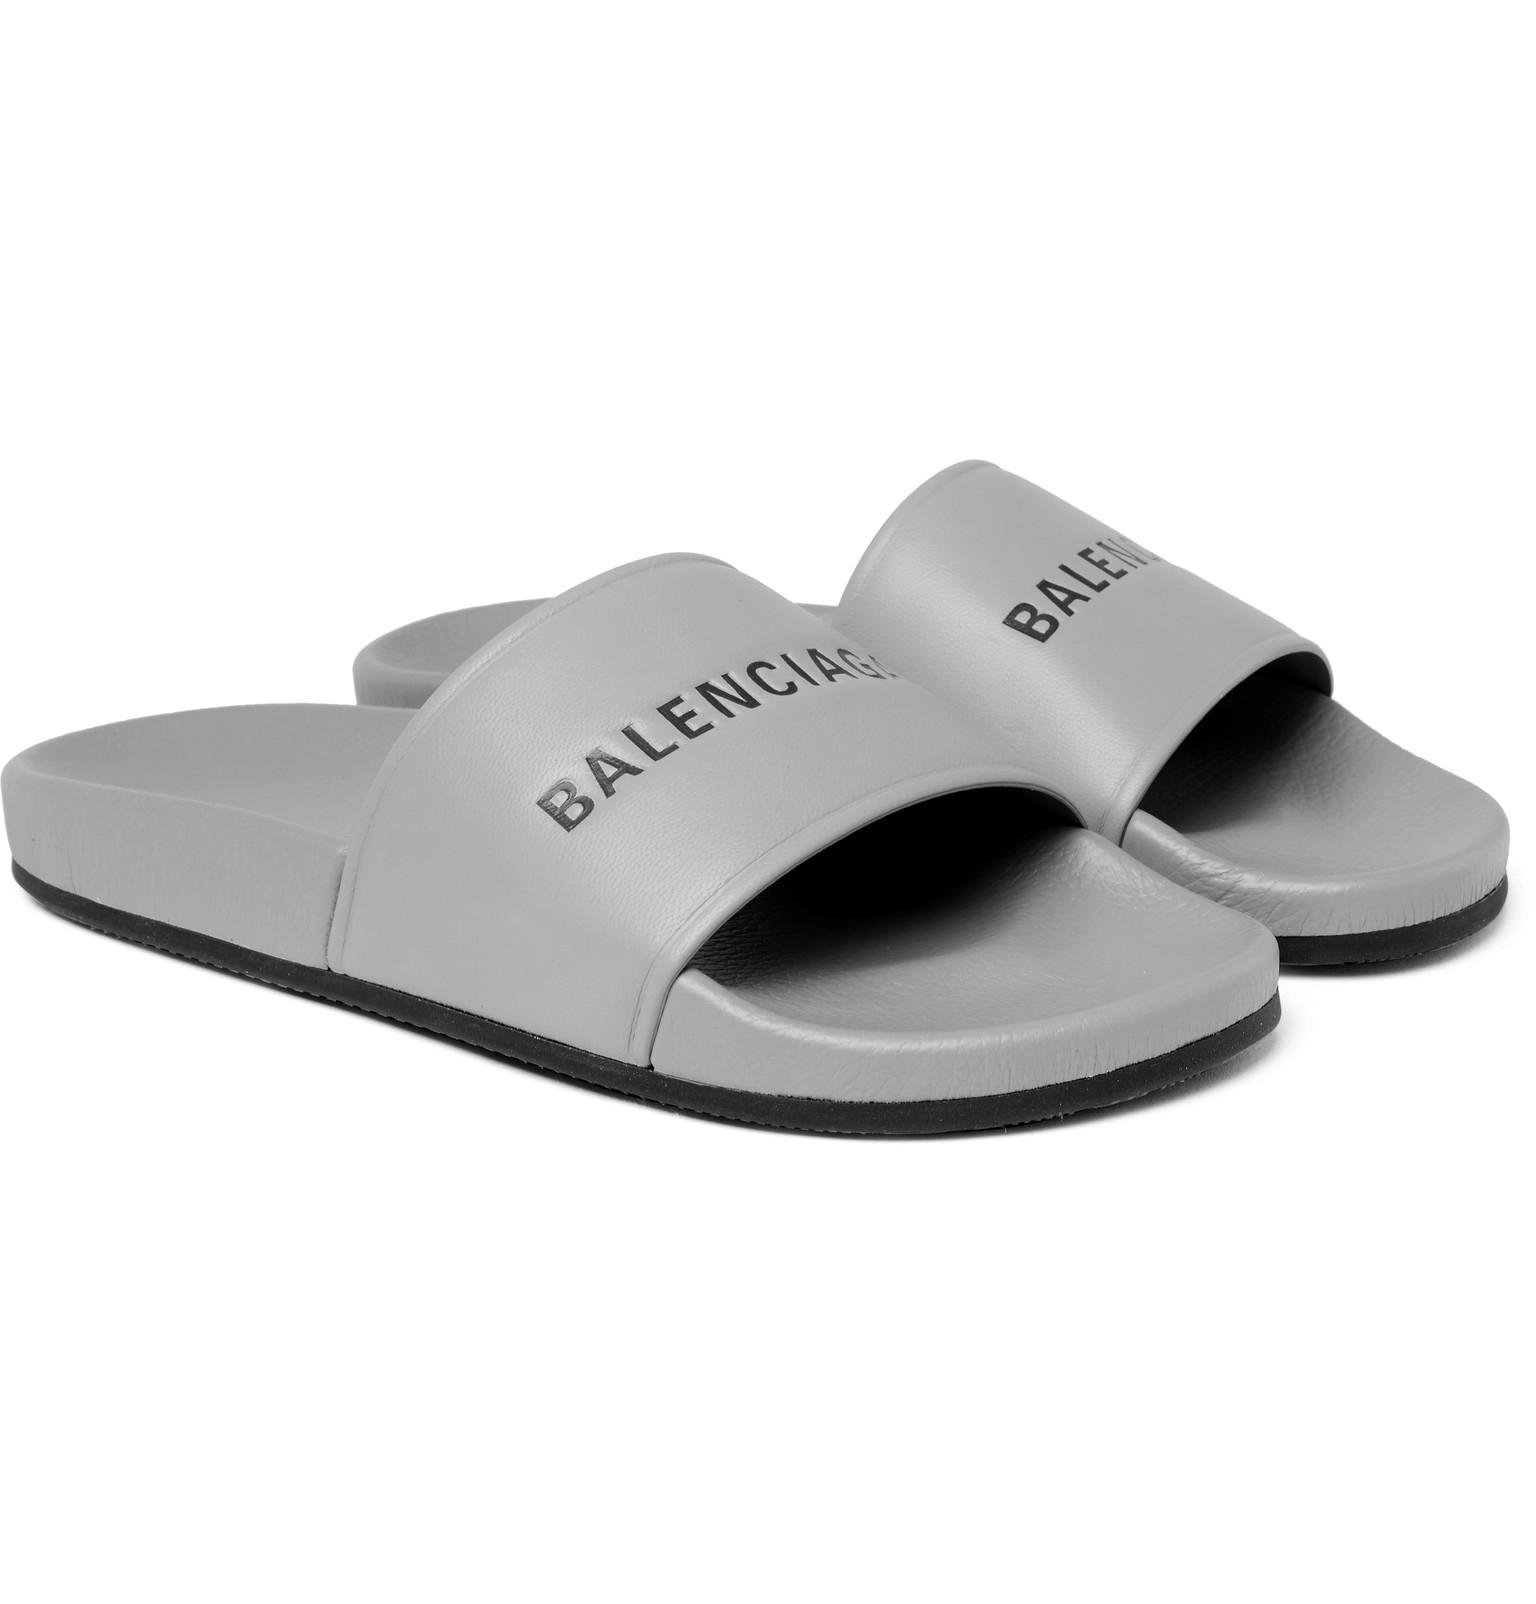 f8f28d63d94 Balenciaga Printed Leather Slides in Gray for Men - Lyst